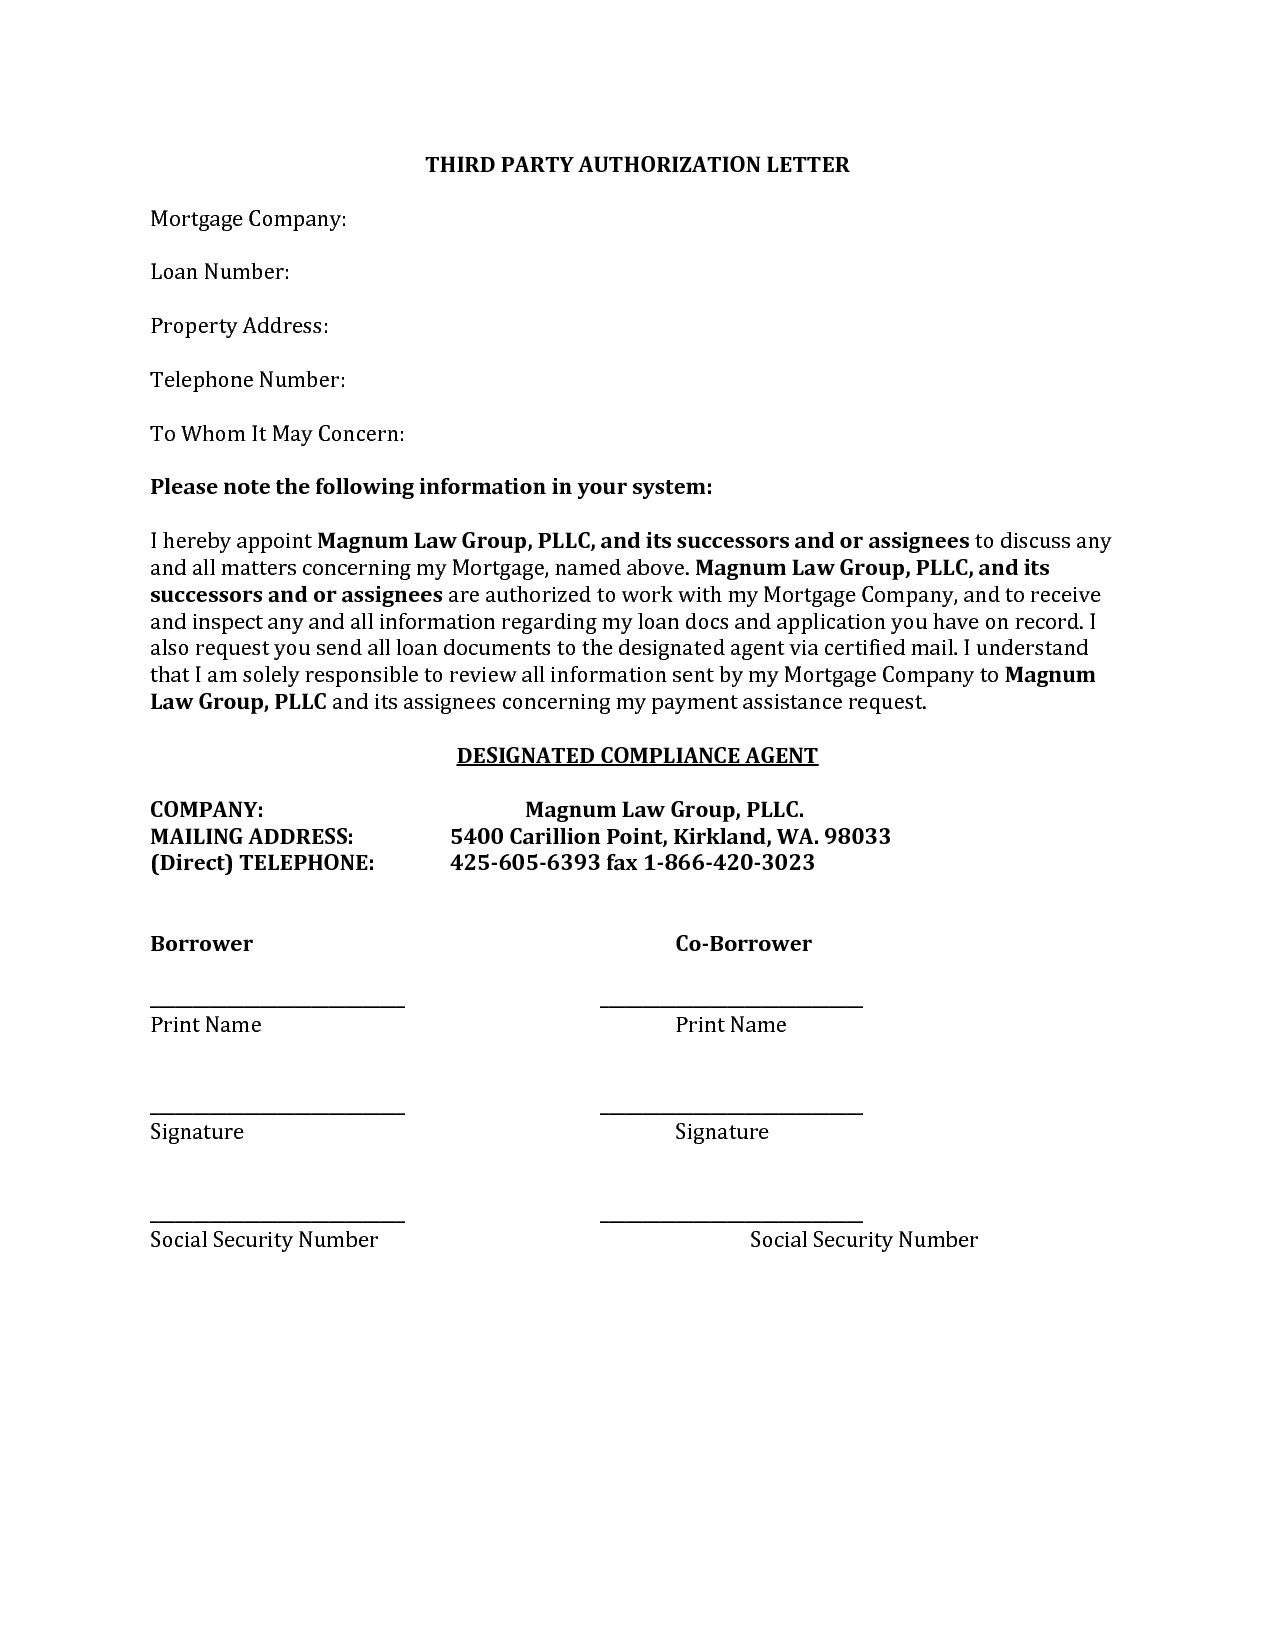 Third Party Authorization Letter Format Best Template Collection